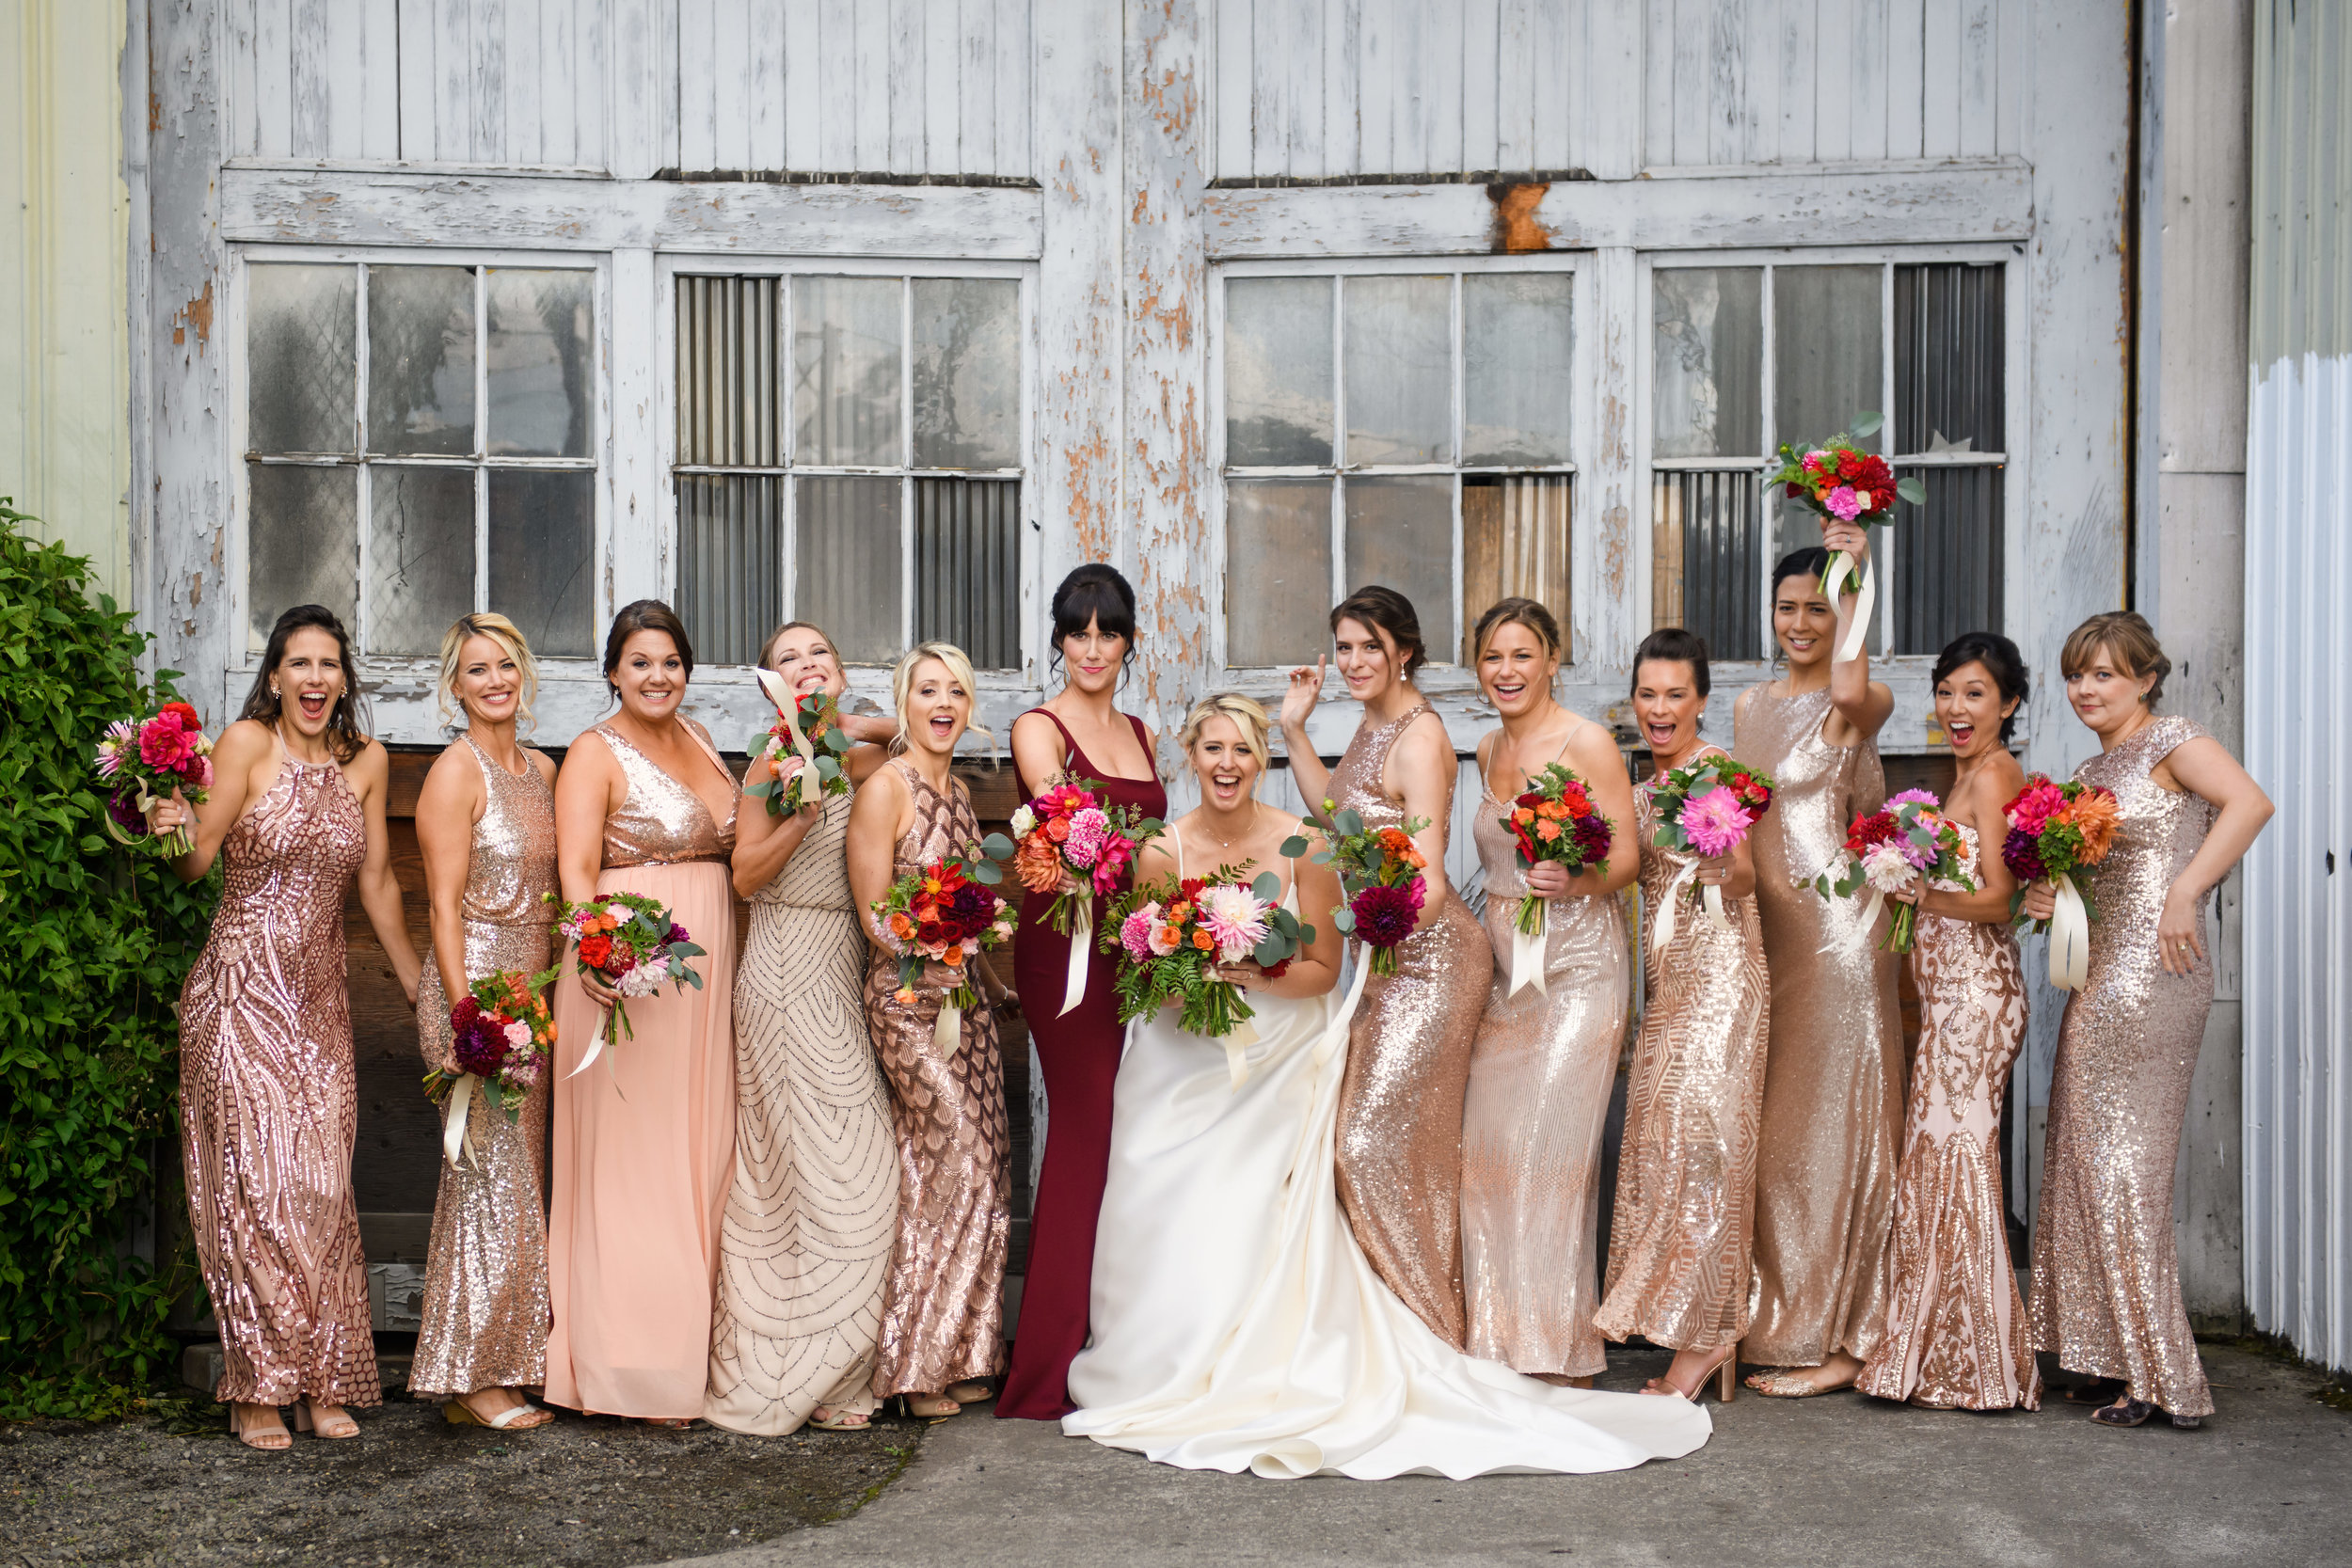 Bridalbliss.com | Portland Seattle Bend Wedding | Oregon Washington Event Planning and Design | Honeysuckle Photography